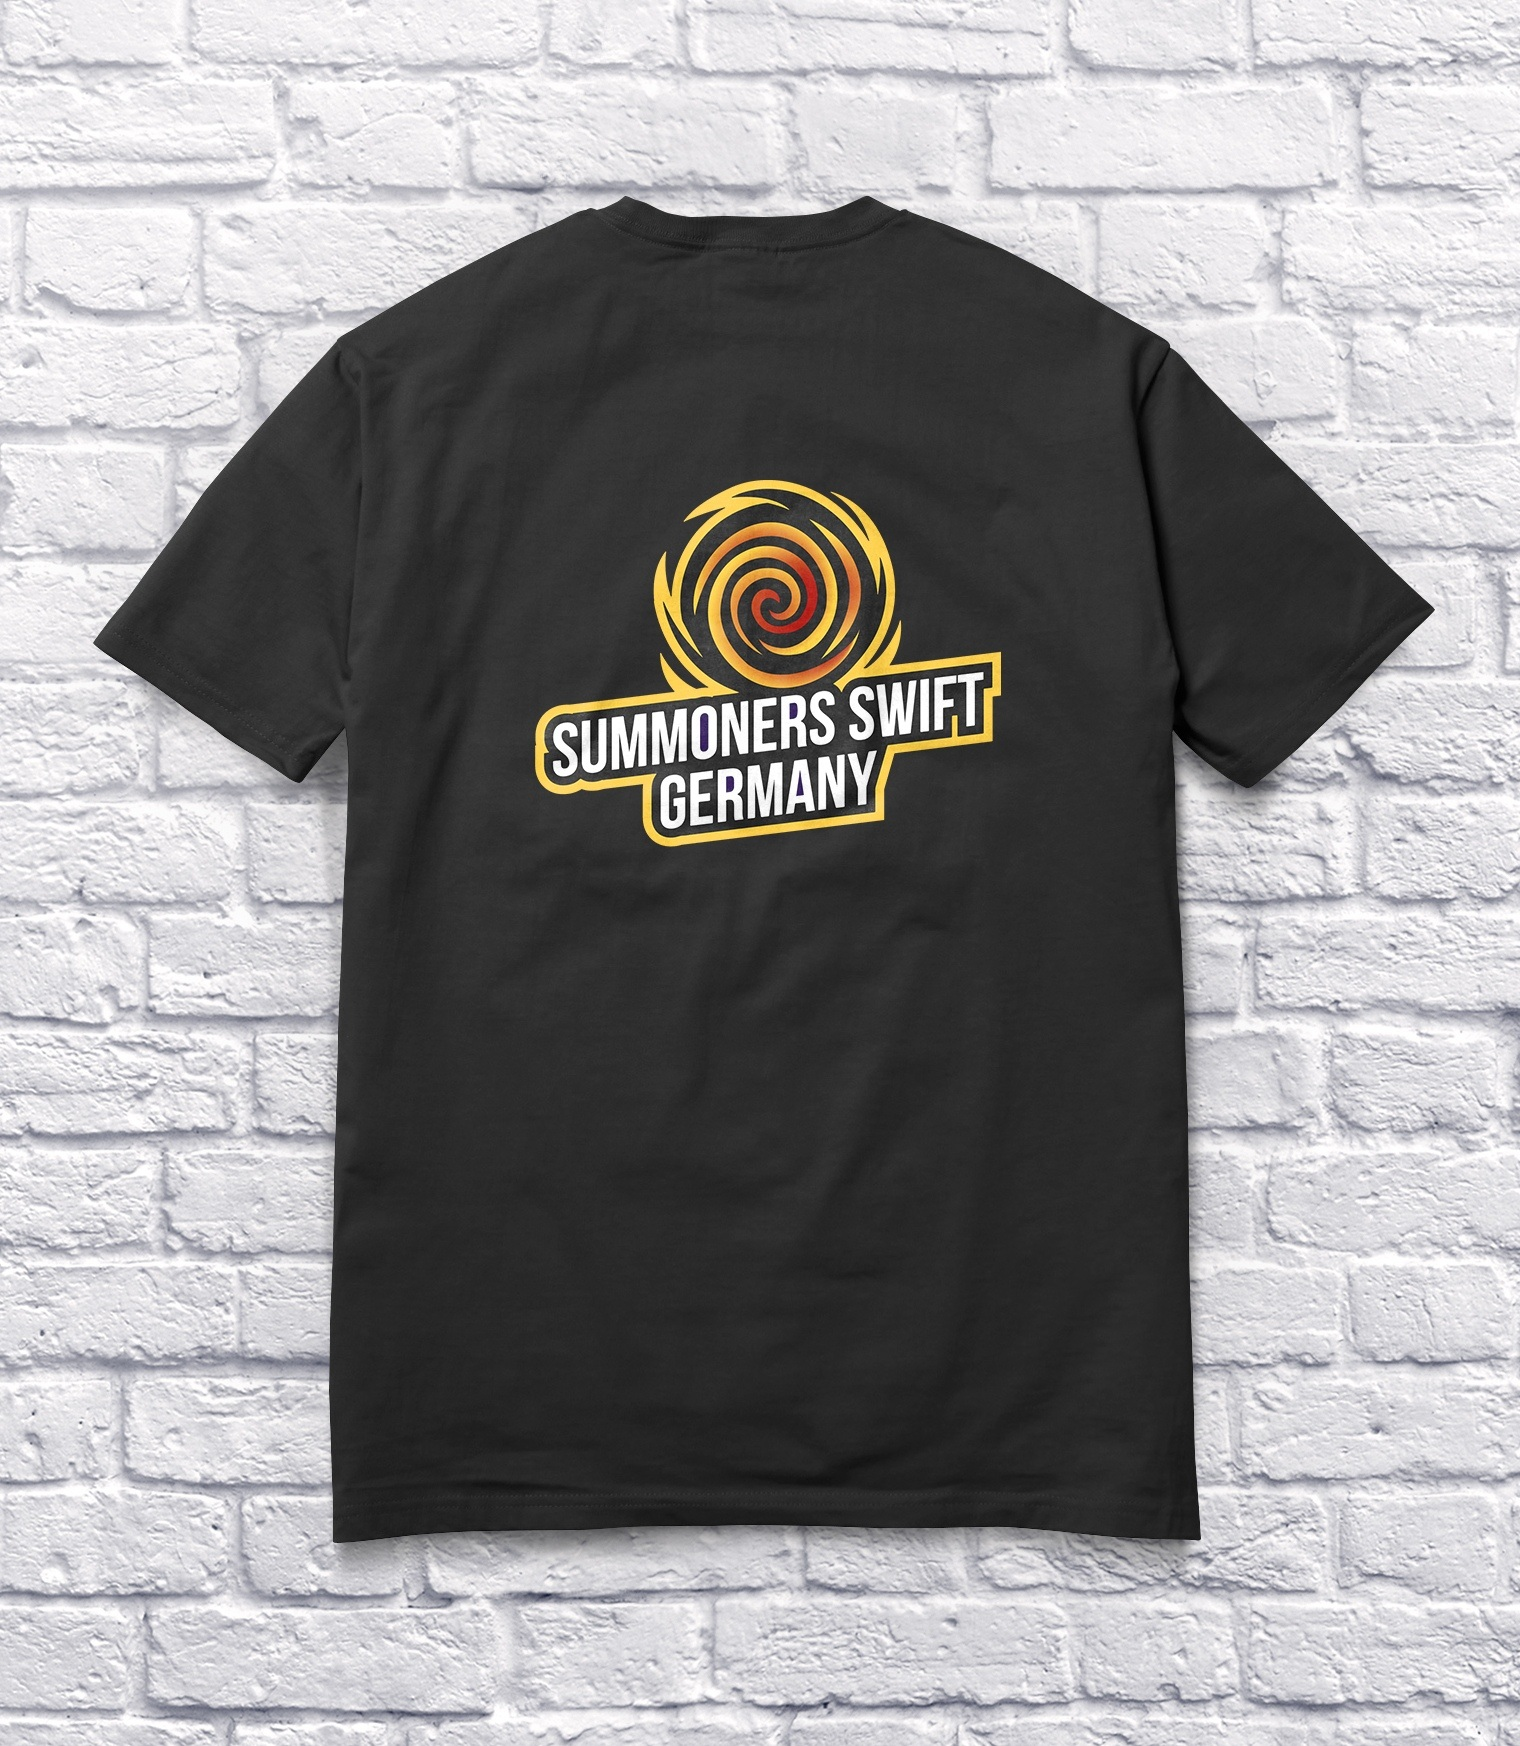 Tshirt Clean Mockup Yellow » Streamer » Gaming Homepage » Logo Design